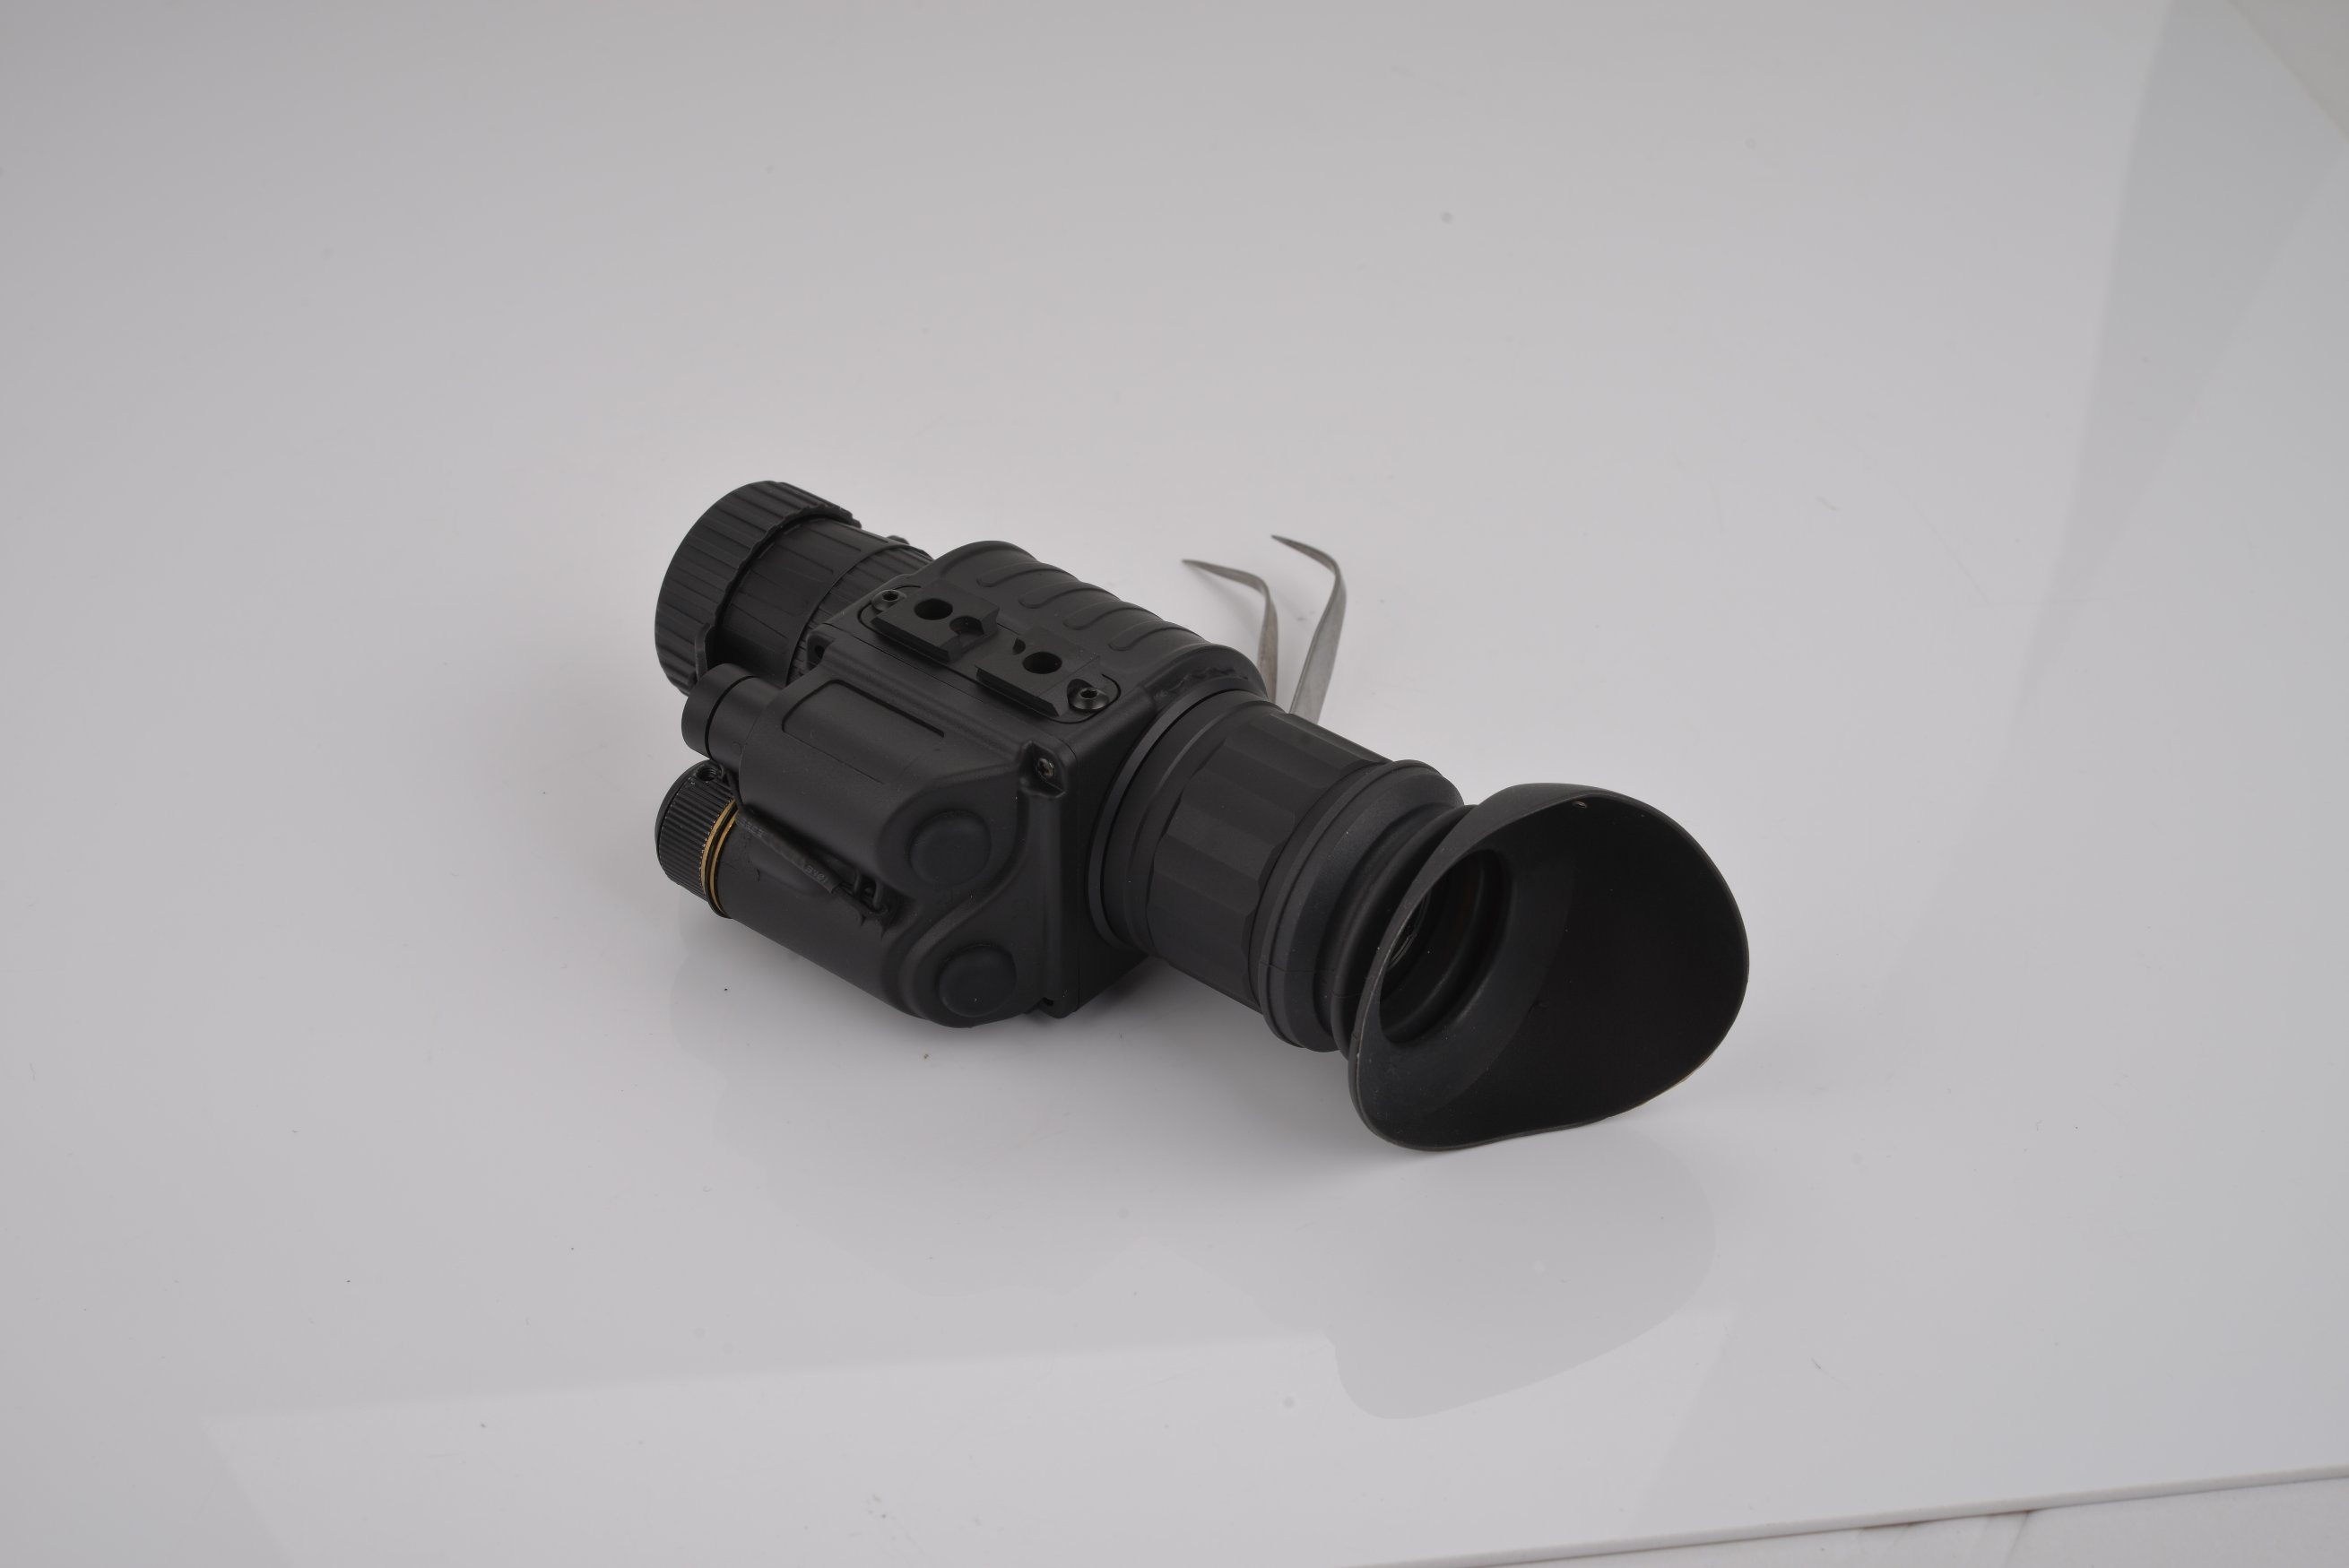 China gen ir high definition night vision monocular with lens